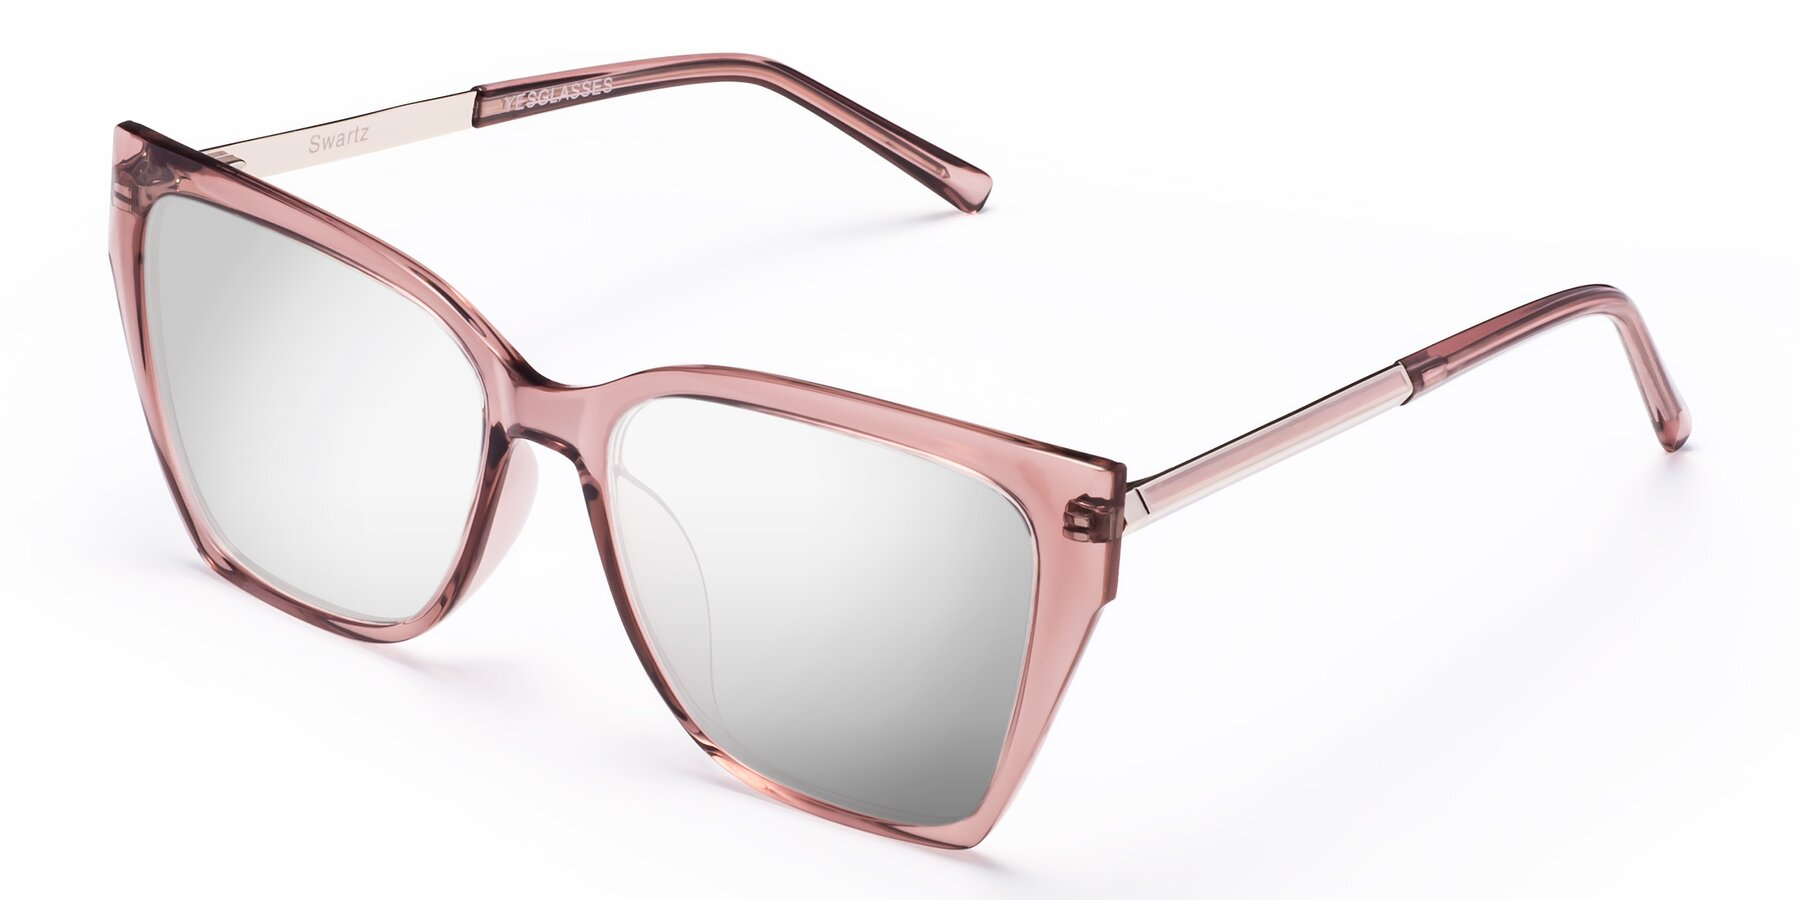 Angle of Swartz in Grape with Silver Mirrored Lenses